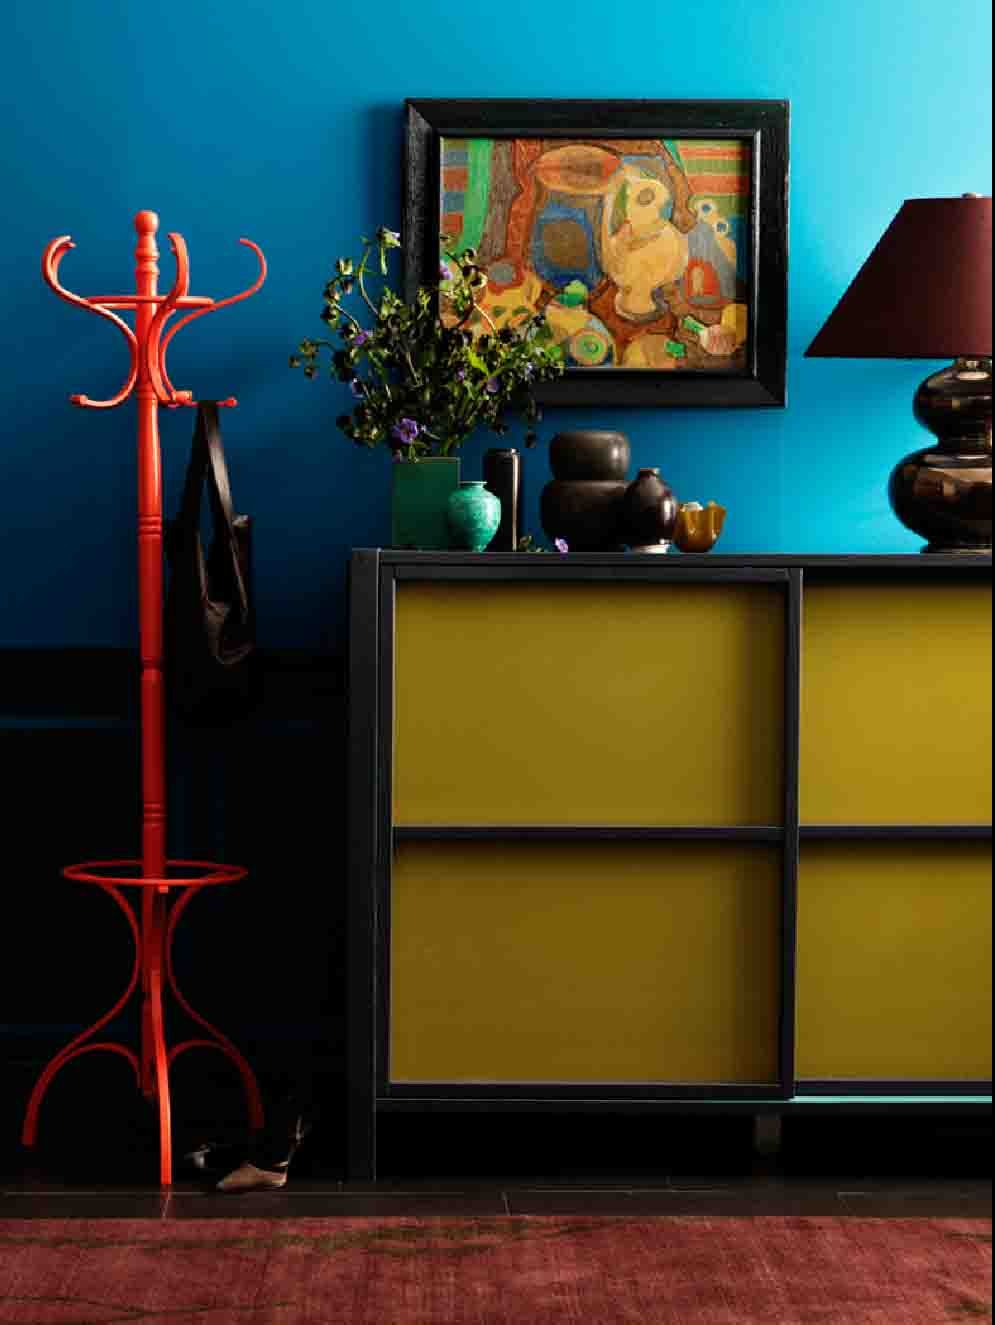 blue.yellow.red! | Spaces | Pinterest | Blue yellow, Color combos ...